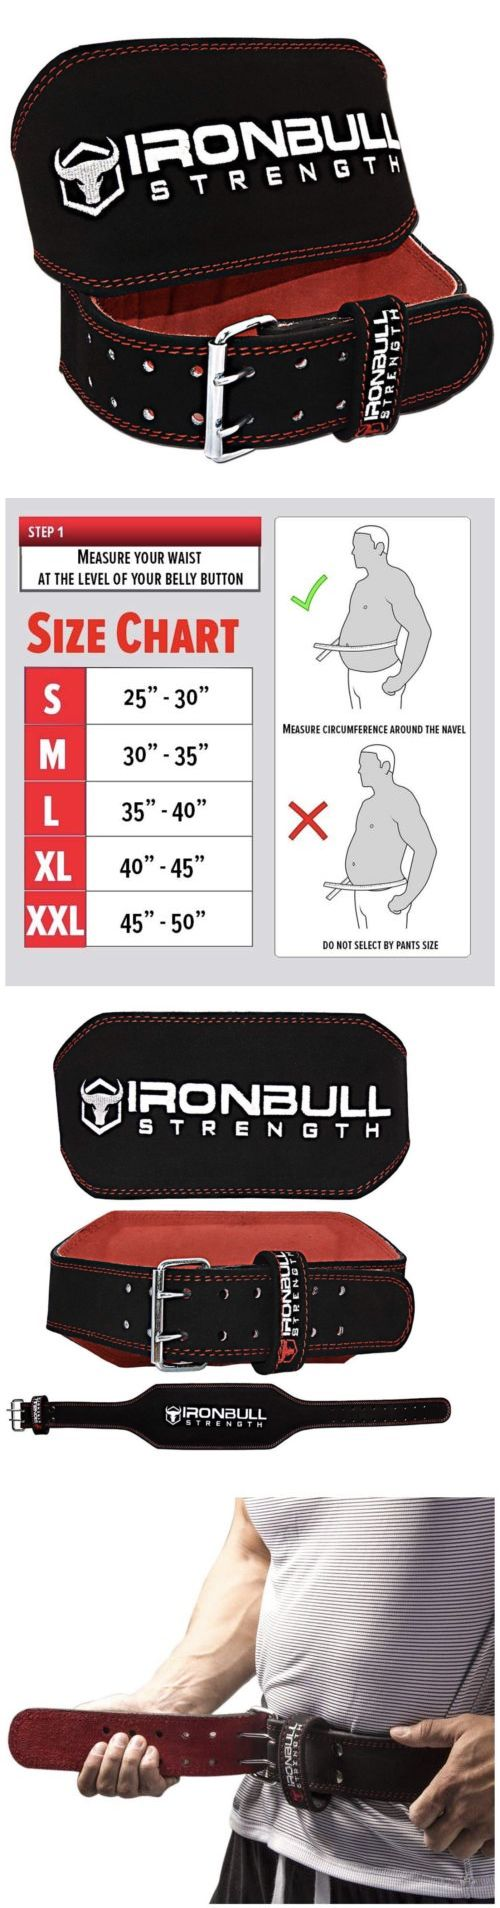 bebf77f955 Belts 36155  Iron Bull Strength Medium M Weight Lifting Belt - 6-Inch  Padded Suede Leather -  BUY IT NOW ONLY   29.5 on  eBay  belts  strength   medium ...